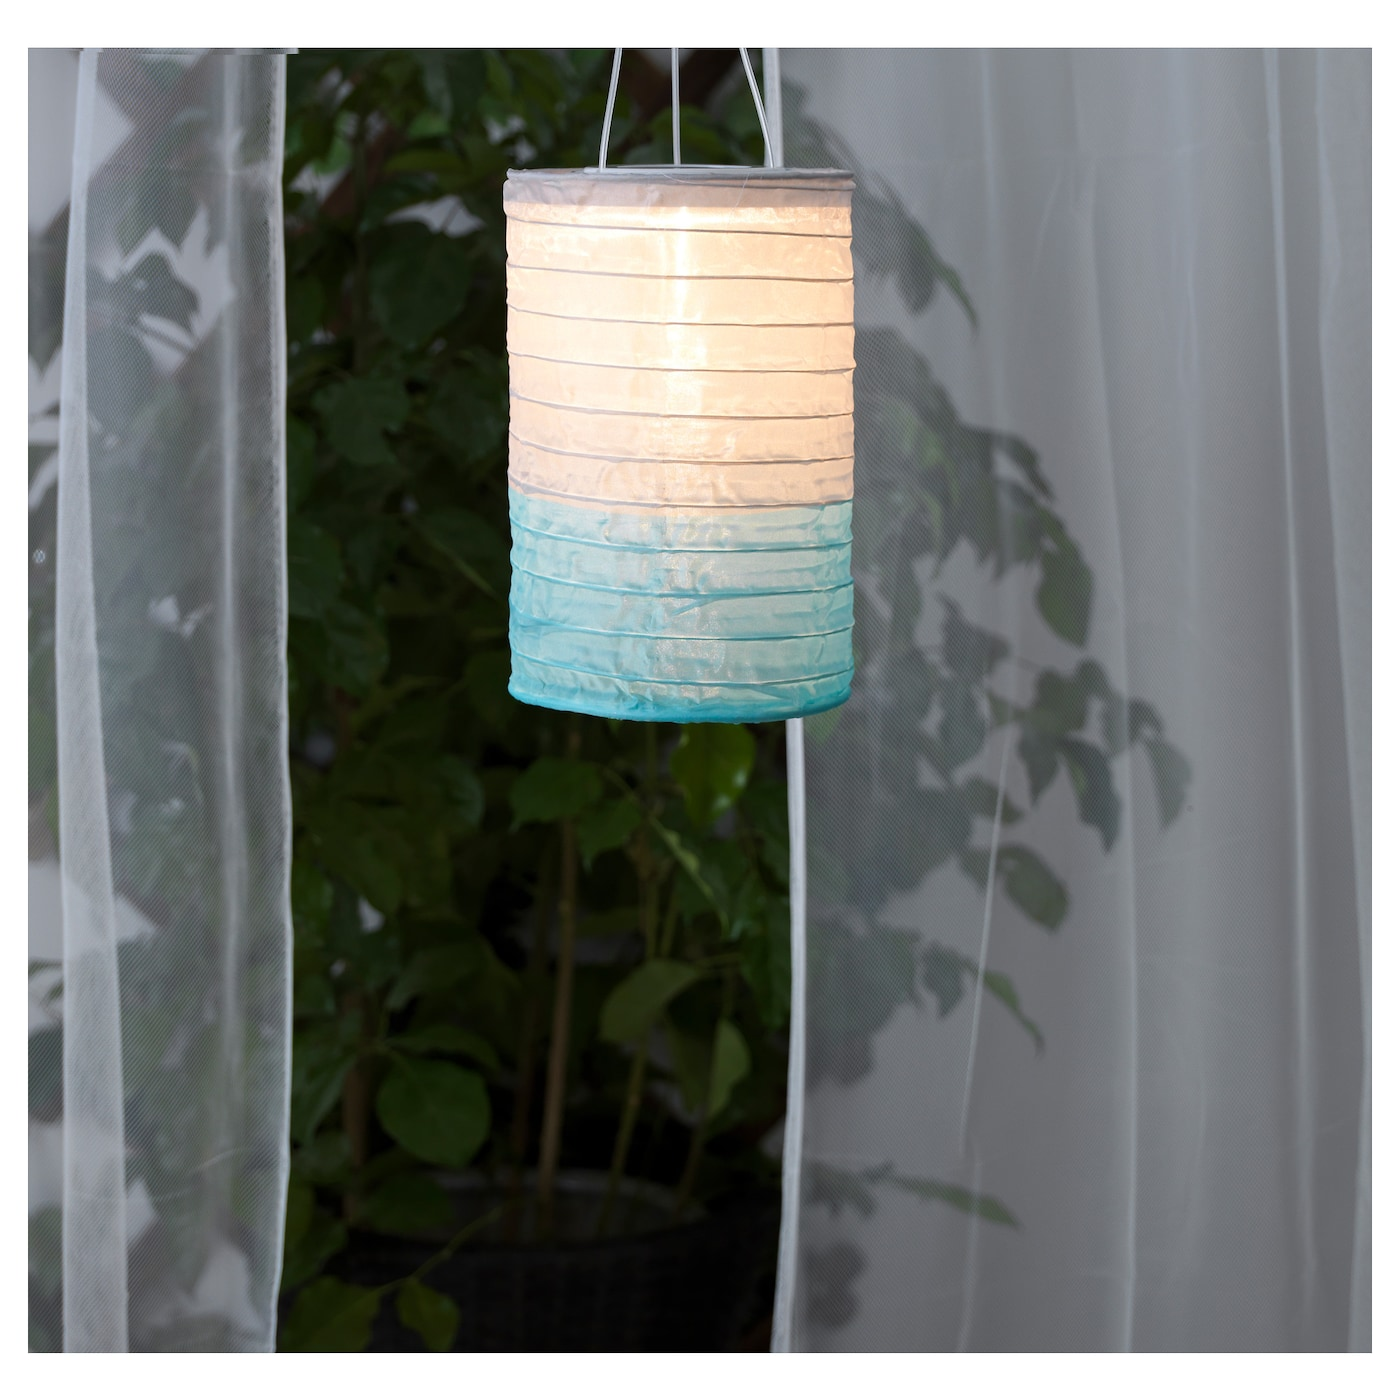 solvinden solar powered pendant lamp tube shaped grey turquoise 15 cm ikea. Black Bedroom Furniture Sets. Home Design Ideas